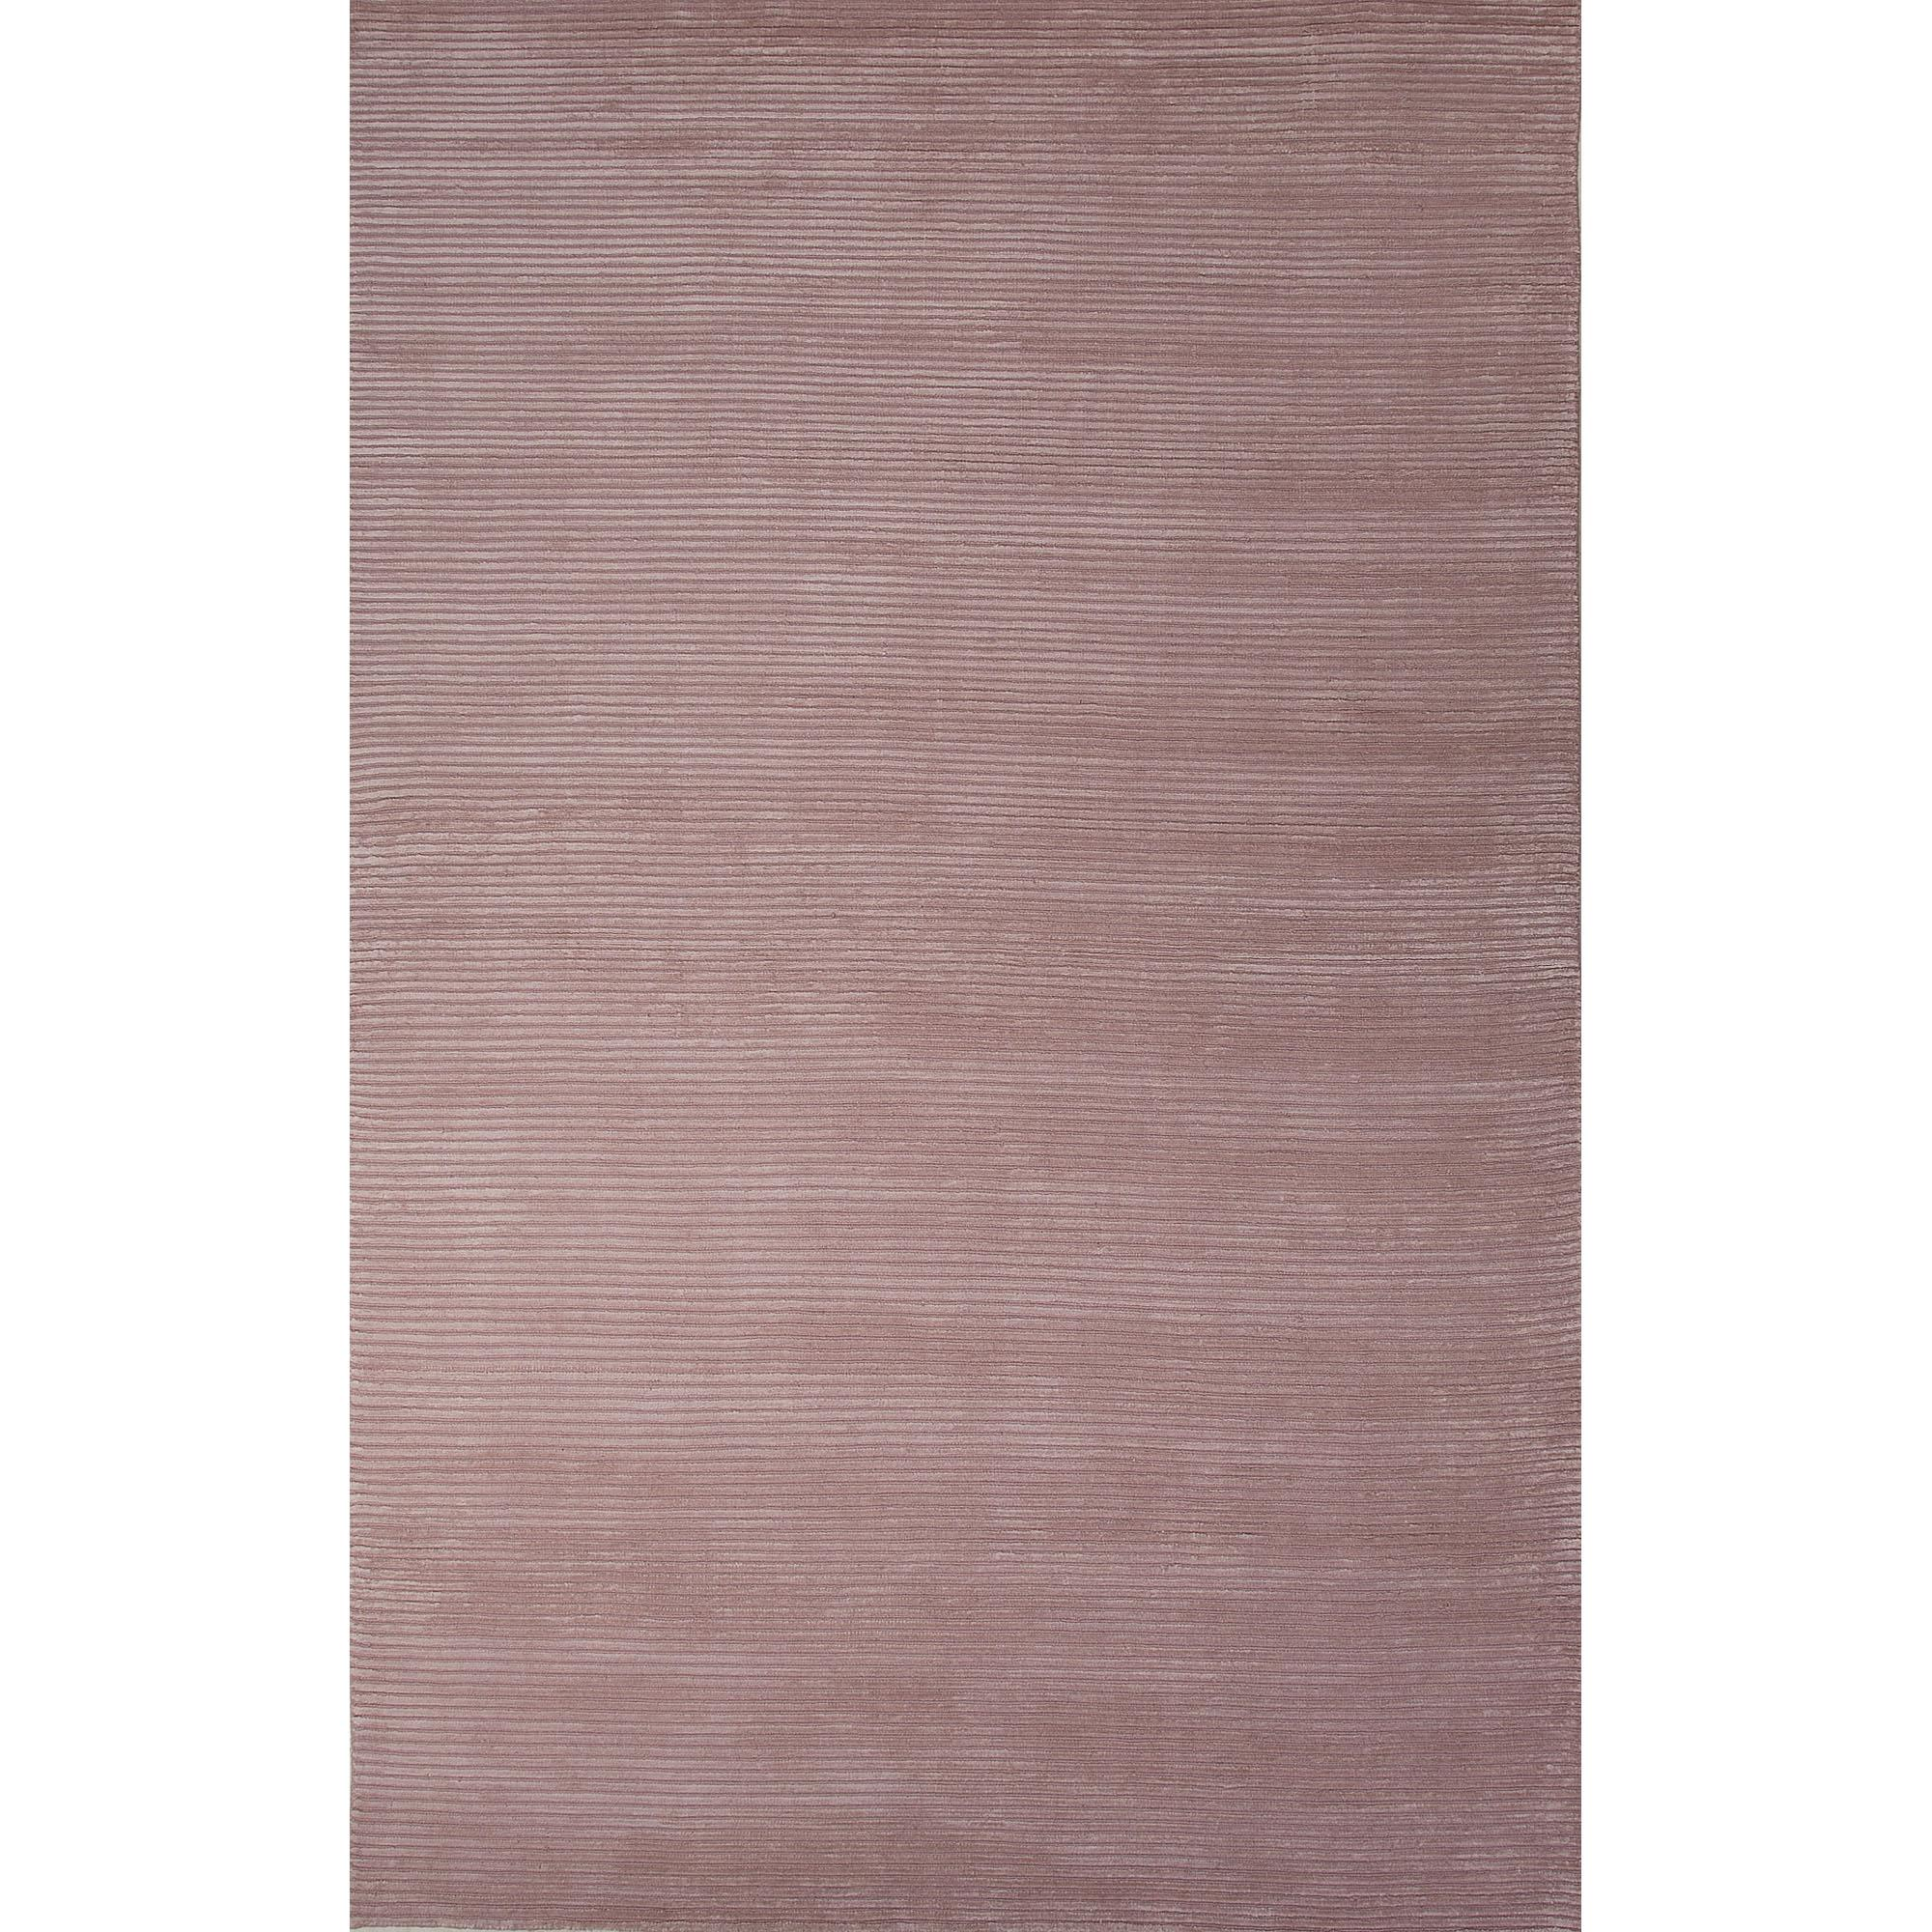 JAIPUR Rugs Basis 2 x 3 Rug - Item Number: RUG124571